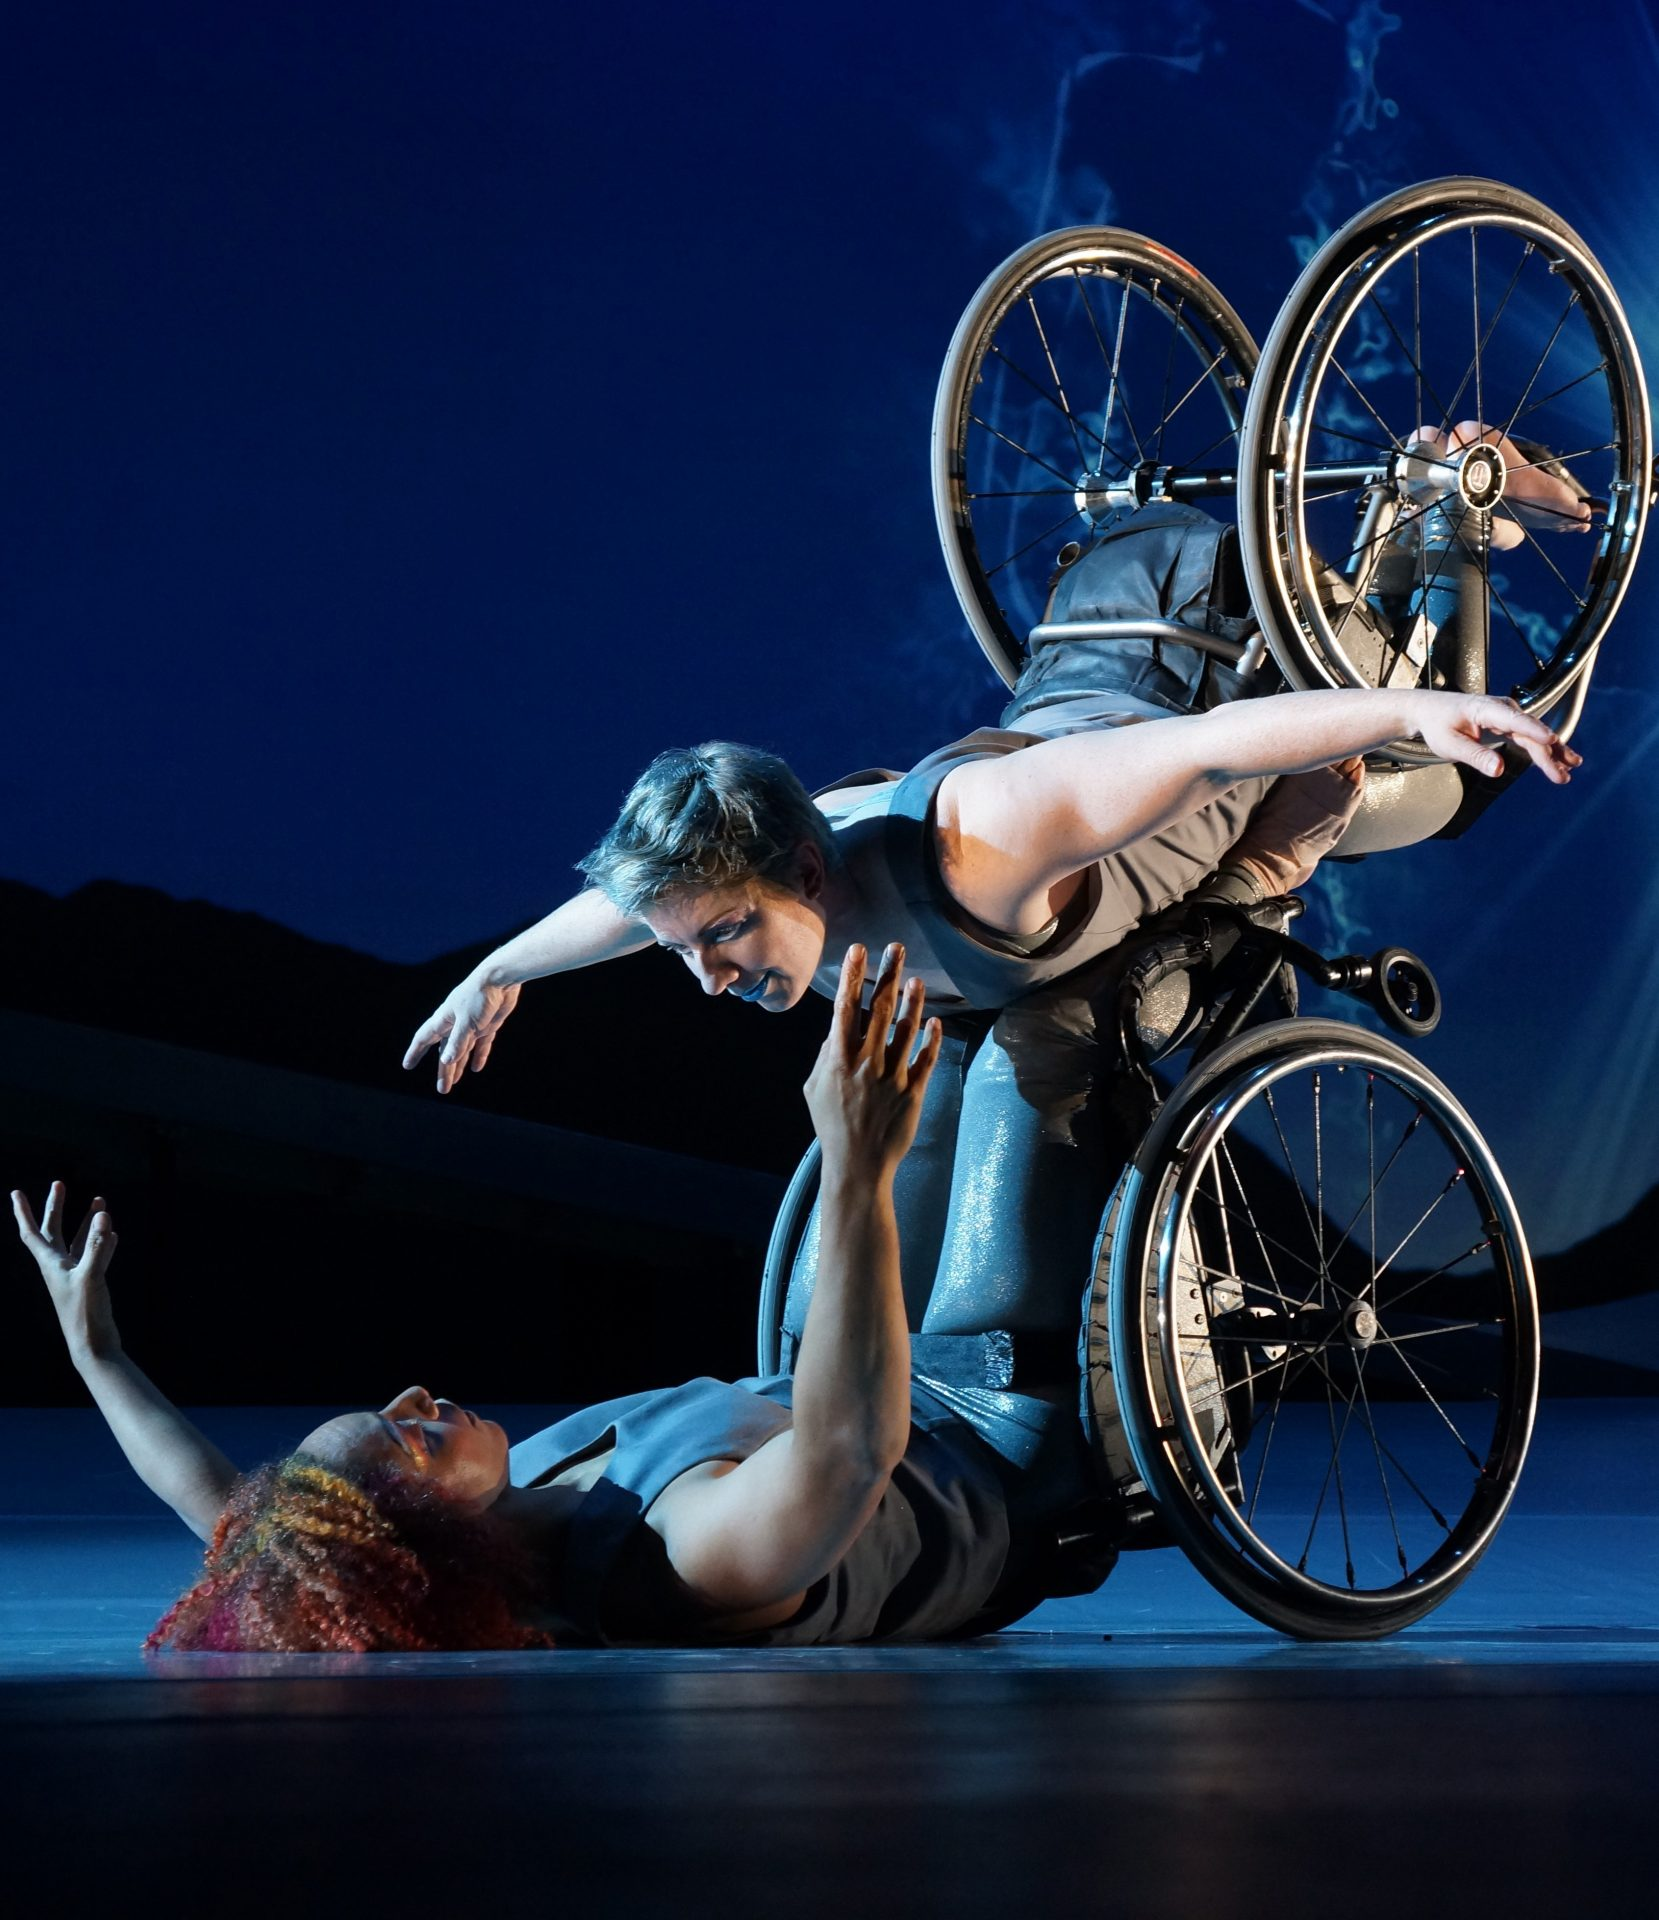 Kinetic Light DESCENT. Dancer Laurel Lawson as Venus is flying in the air with arms spread wide, wheels spinning, and supported by dancer Alice Sheppard as Andromeda who is lifting from the ground below. They are making eye contact and smiling. Photo by Jay Newman / BRITT Festival.